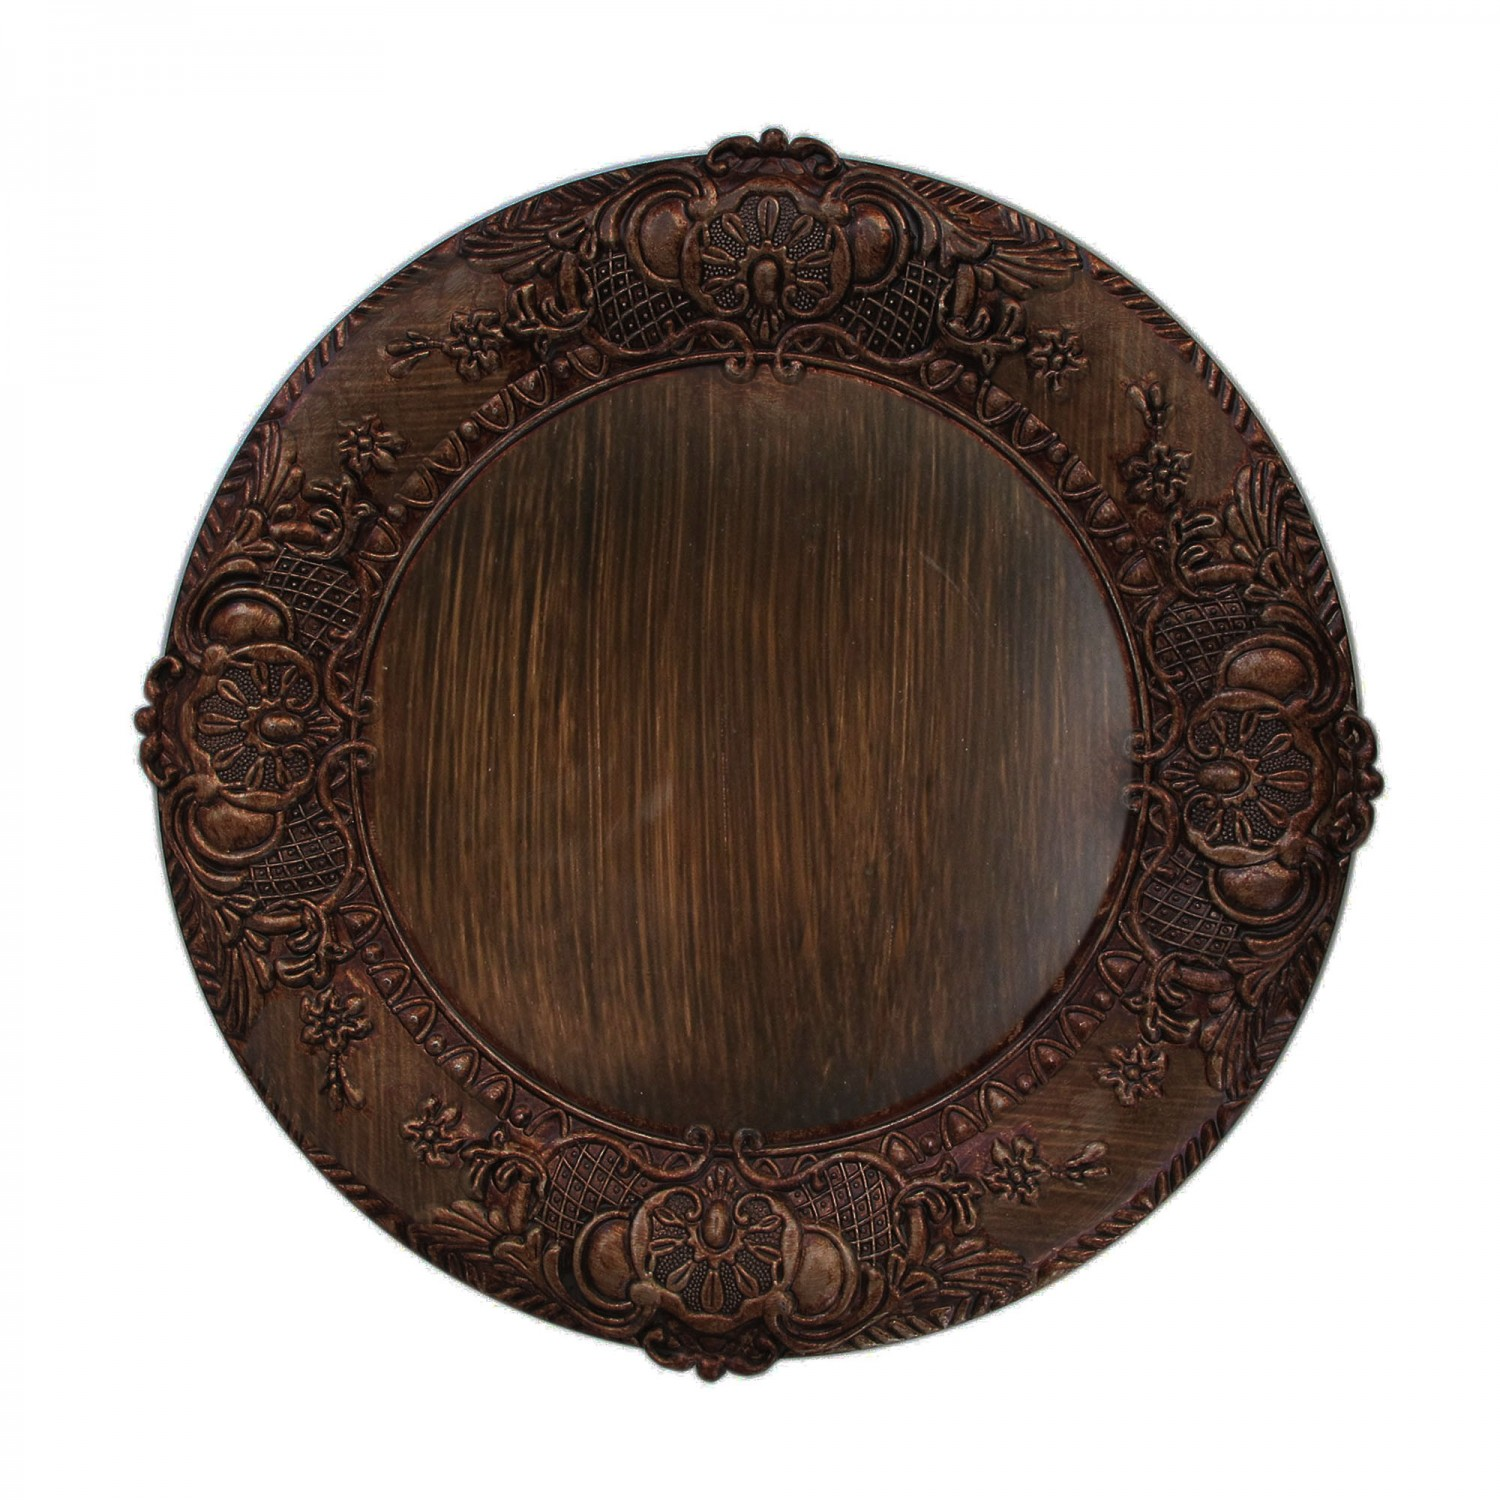 The Jay Companies 1320429 Round Embossed Brown Charger Plate 14""